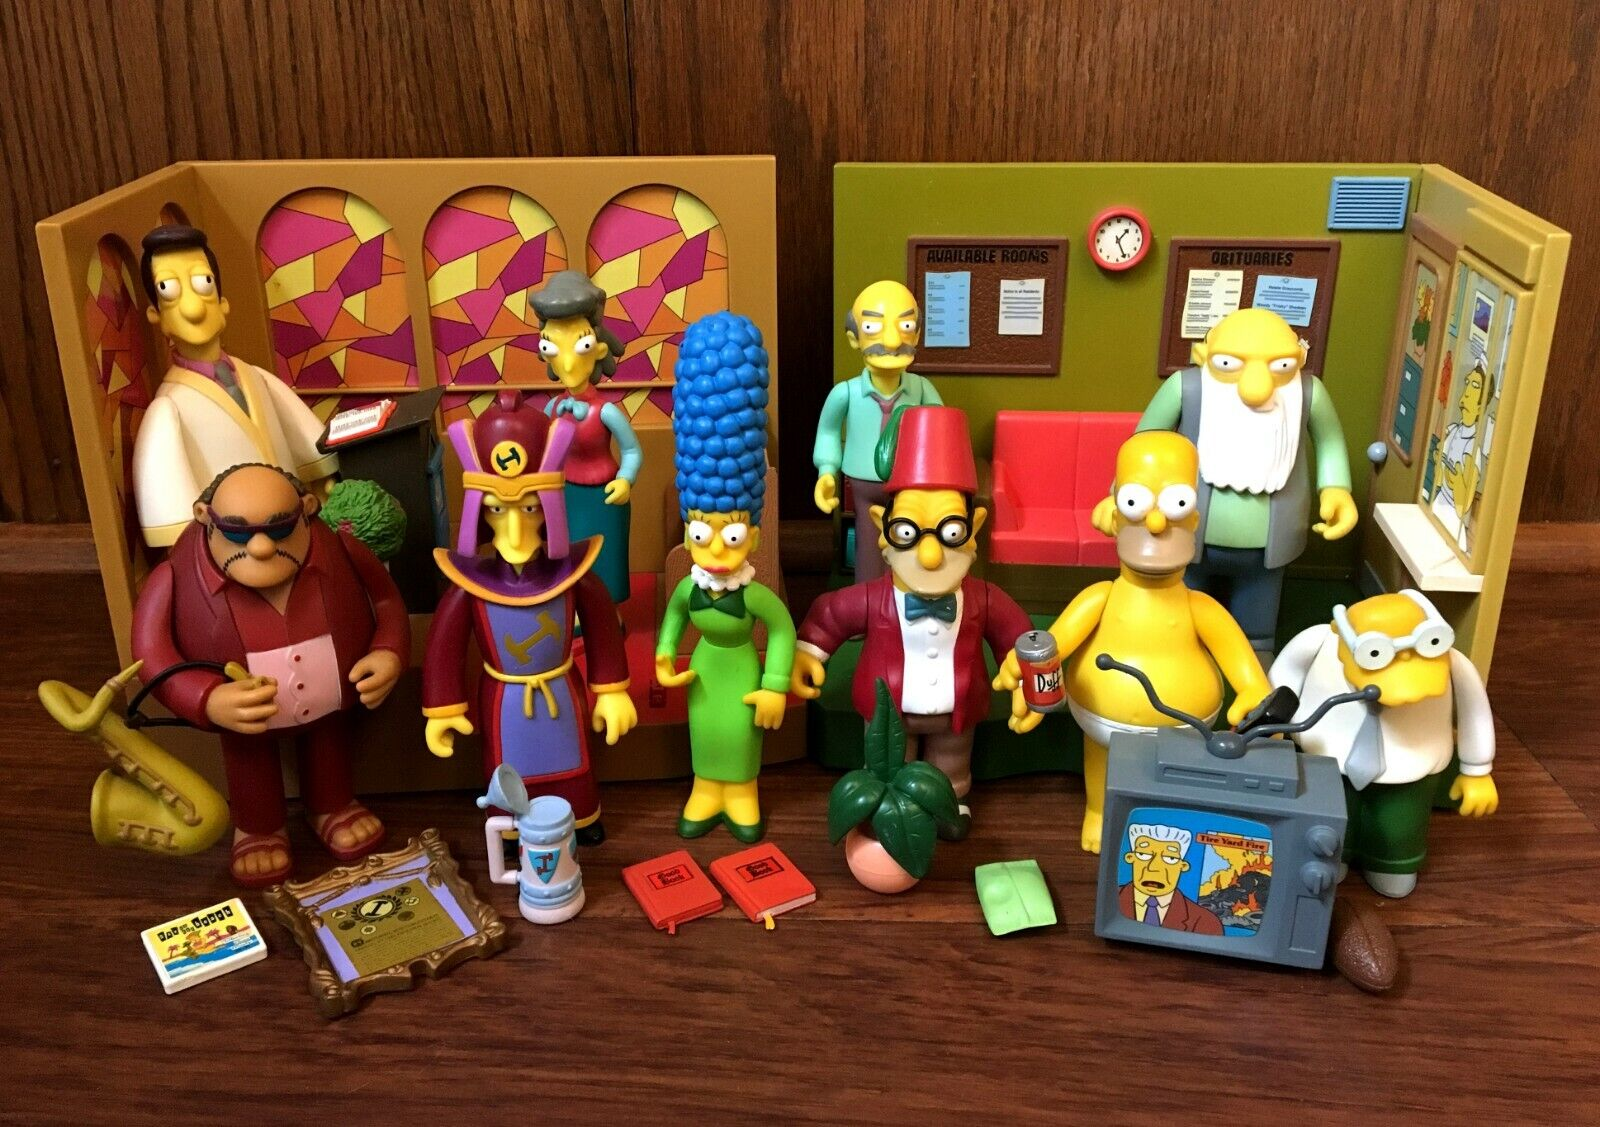 Simpsons WOS Playmates Figures Playsets Accessories Lot Church Retirement Castle